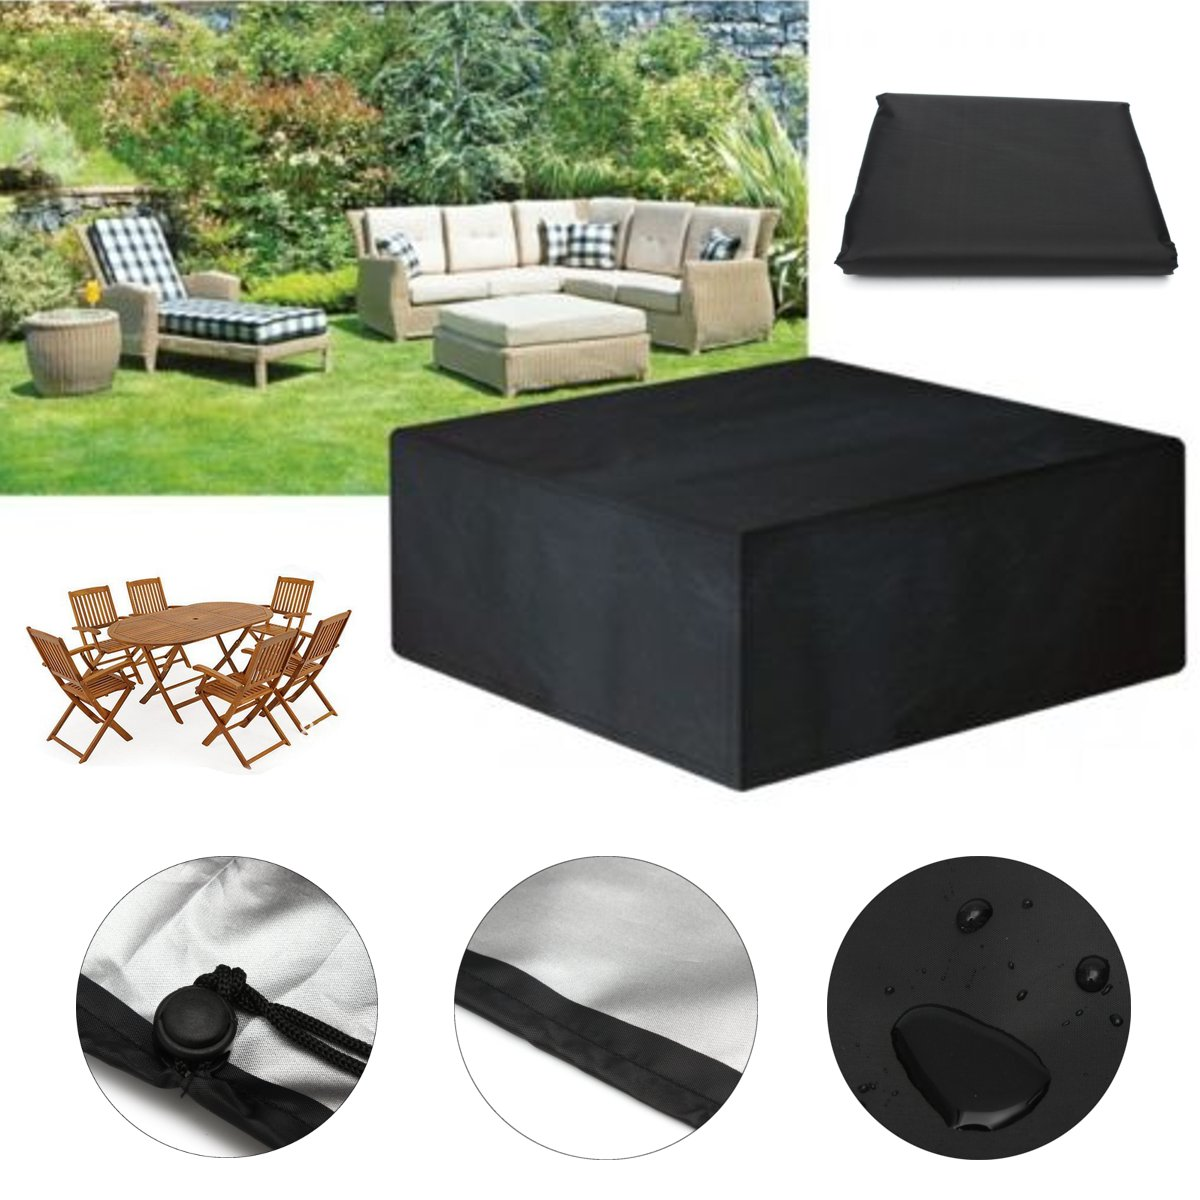 205X104X71cm Outdoor Patio Furniture Set Cover Garden Table Protective Cover Dustproof Table Cloth Home Textiles Waterproof(China (Mainland))